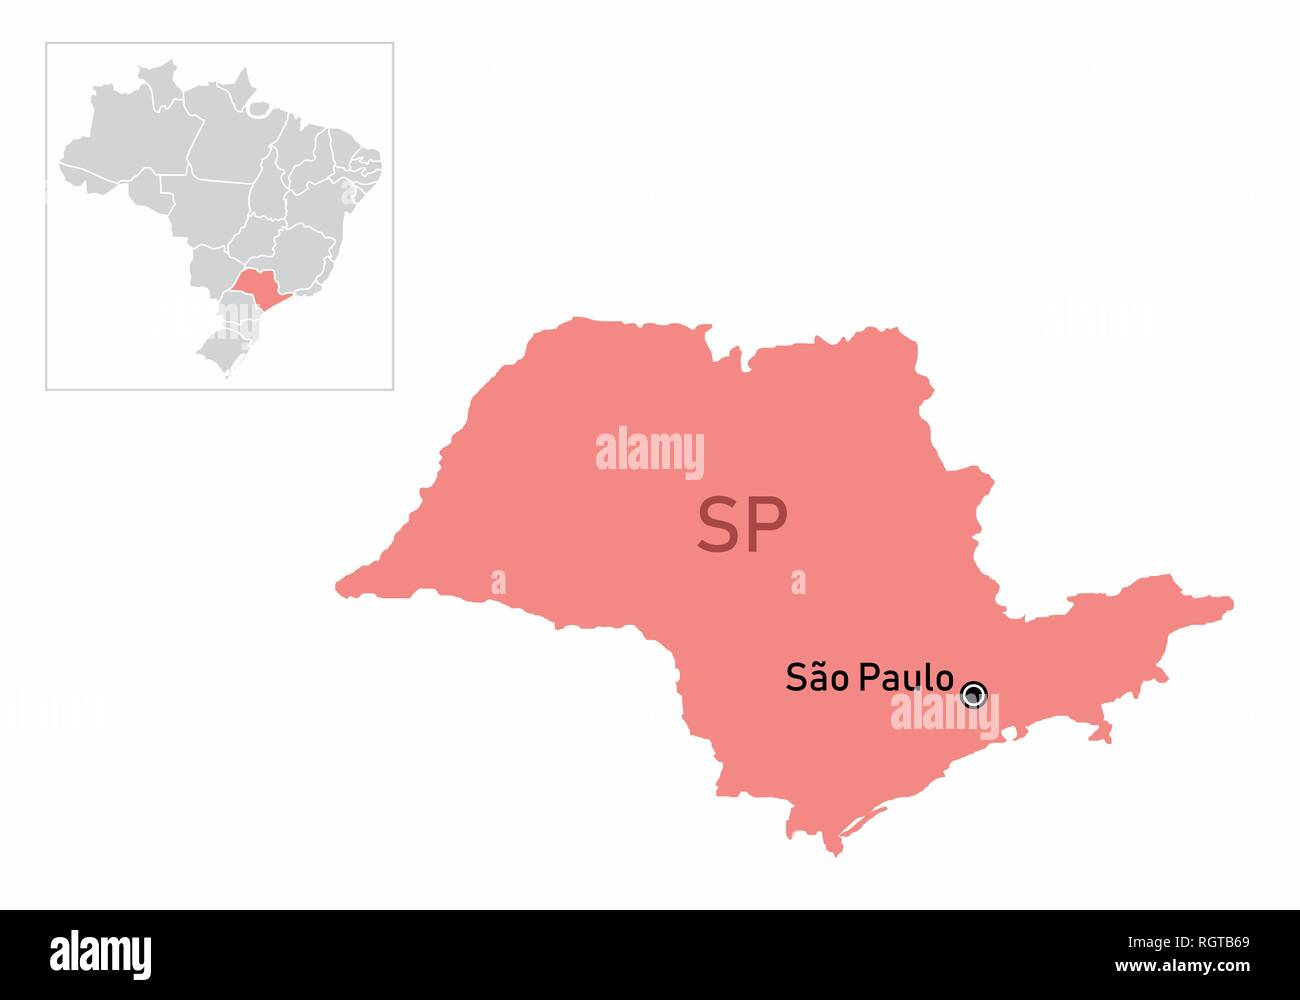 Sao Paulo State Map.Illustration Of The Sao Paulo State And Its Location In Brazil Map